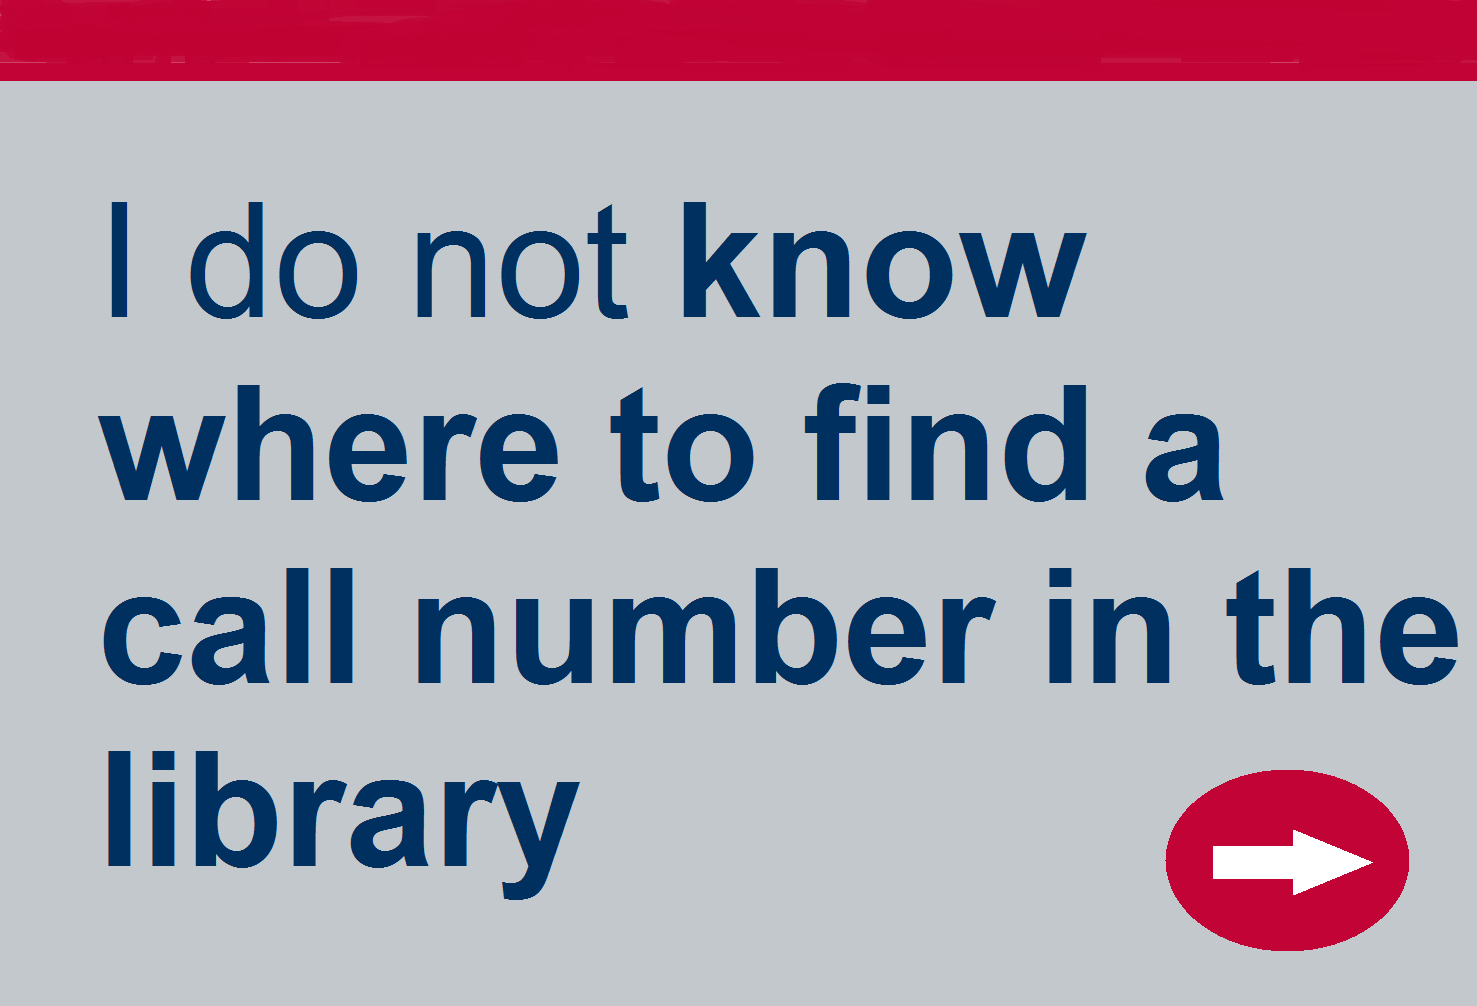 Need to know where to find a call number in the library